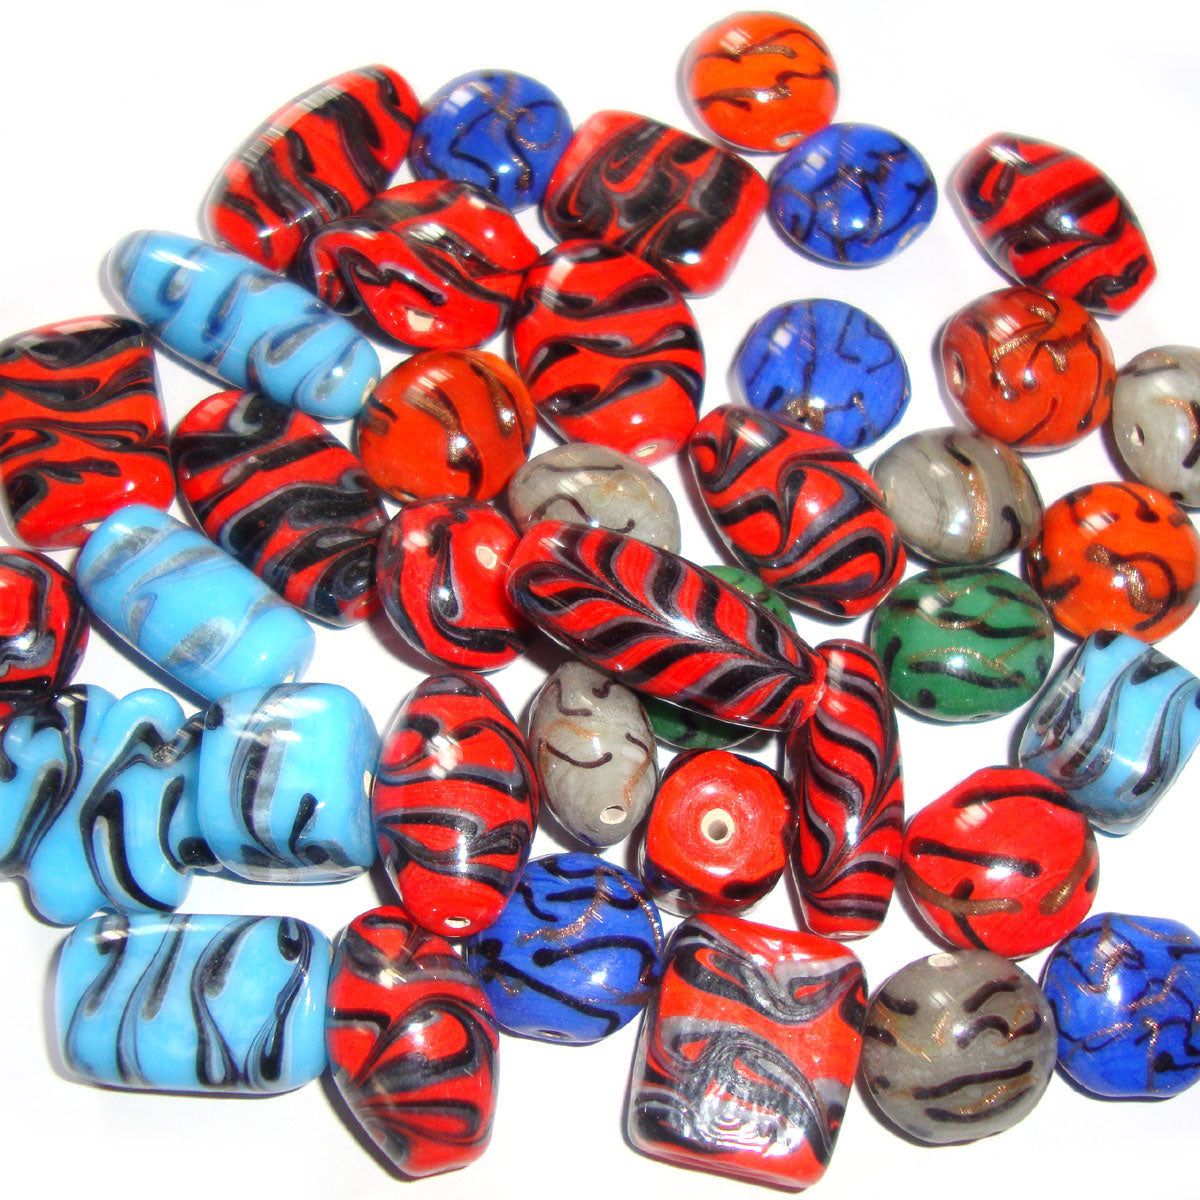 Multi Shapes Mix colors Wave Stripes feathers Lampwork Mix Glass Beads for Jewelry making